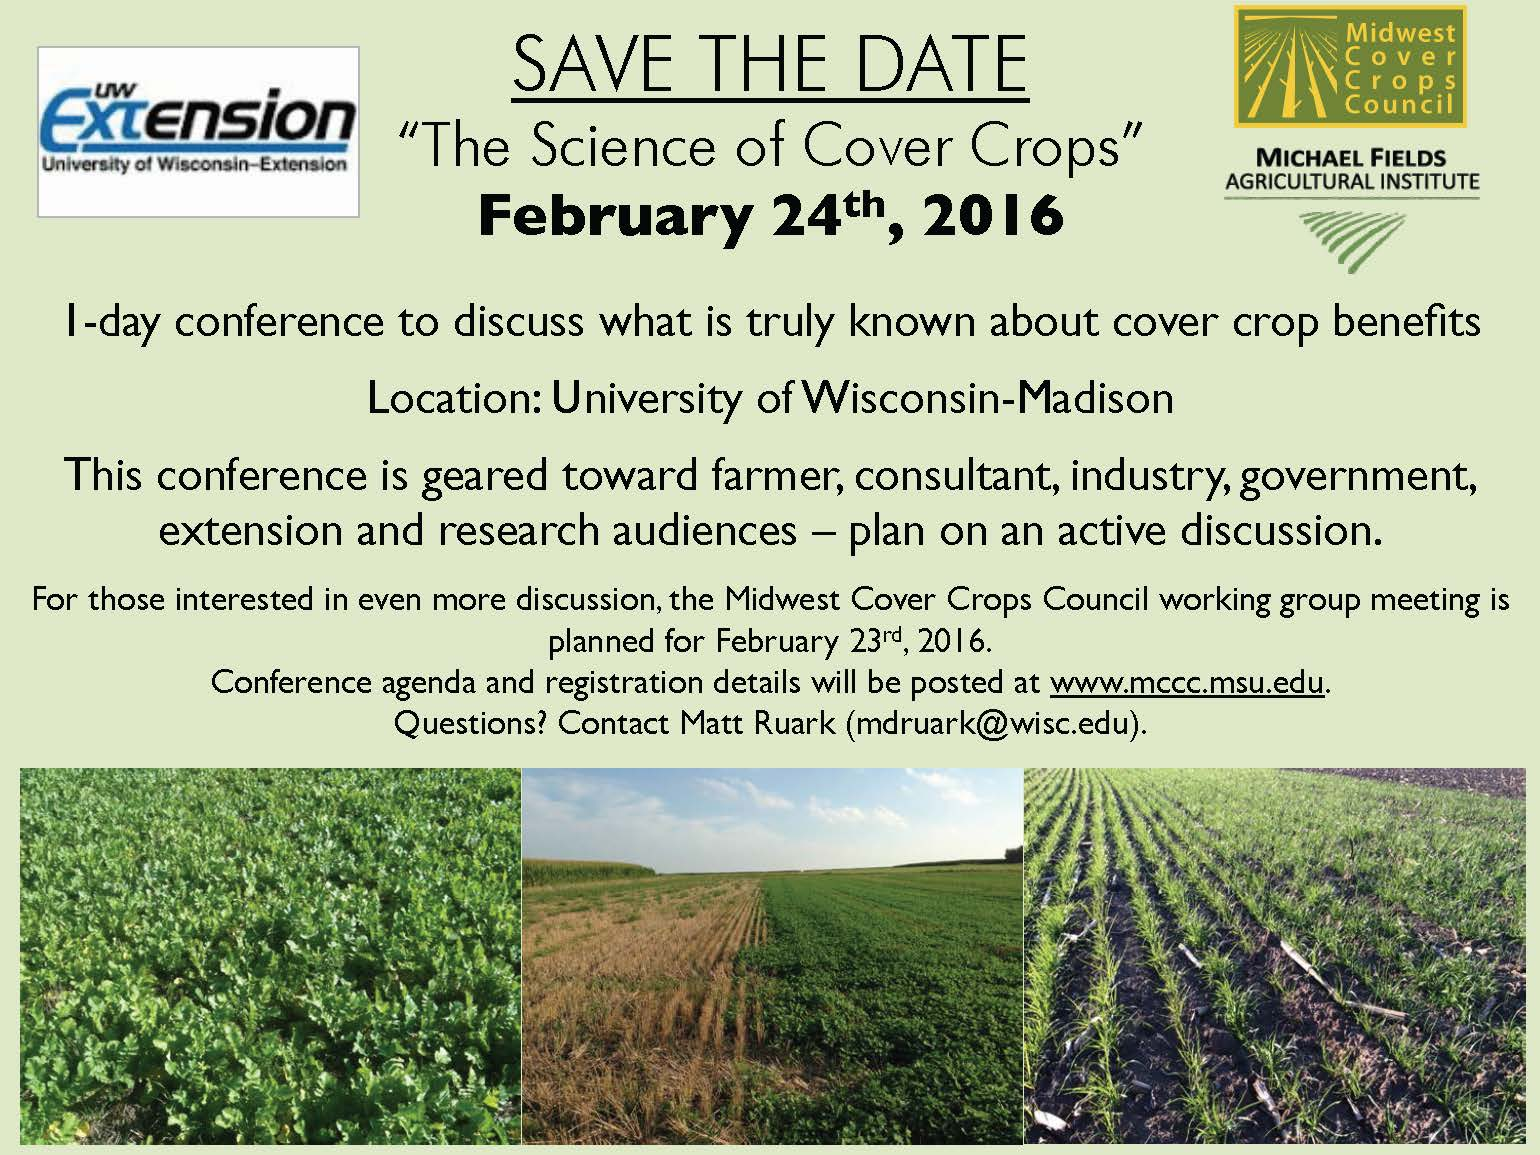 Save the Date - The Science of Cover Crops